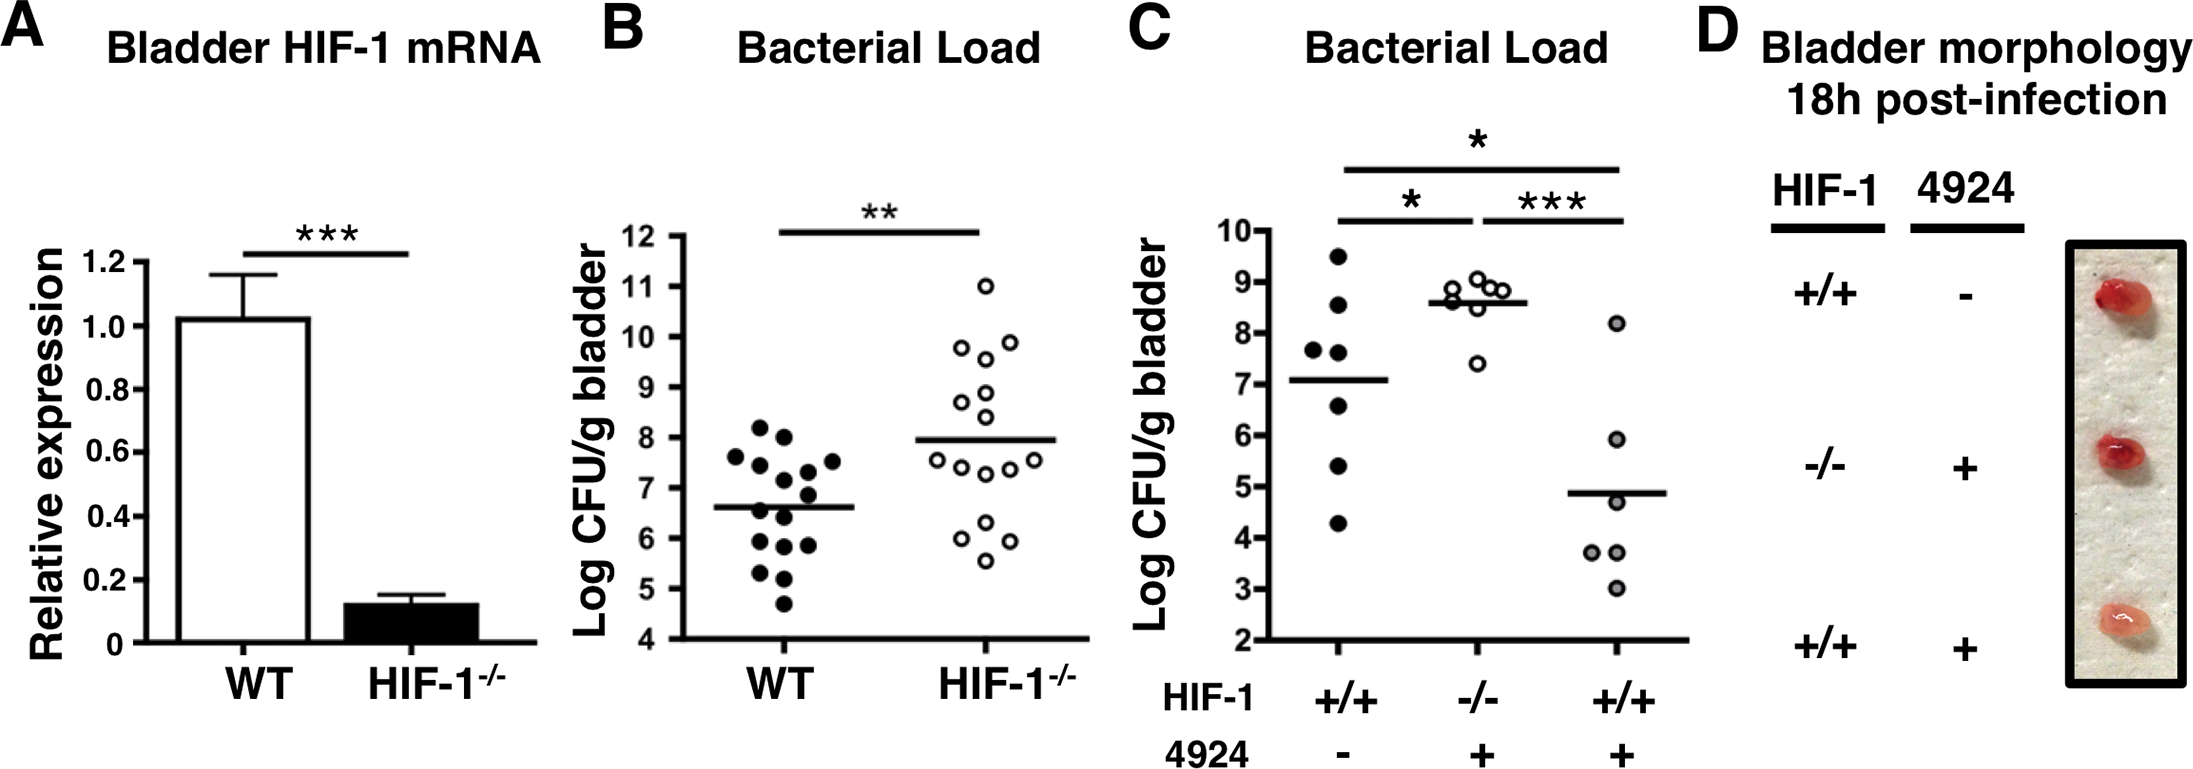 Mice lacking HIF-1 in their bladder epithelium are more susceptible to UPEC urinary tract colonization.